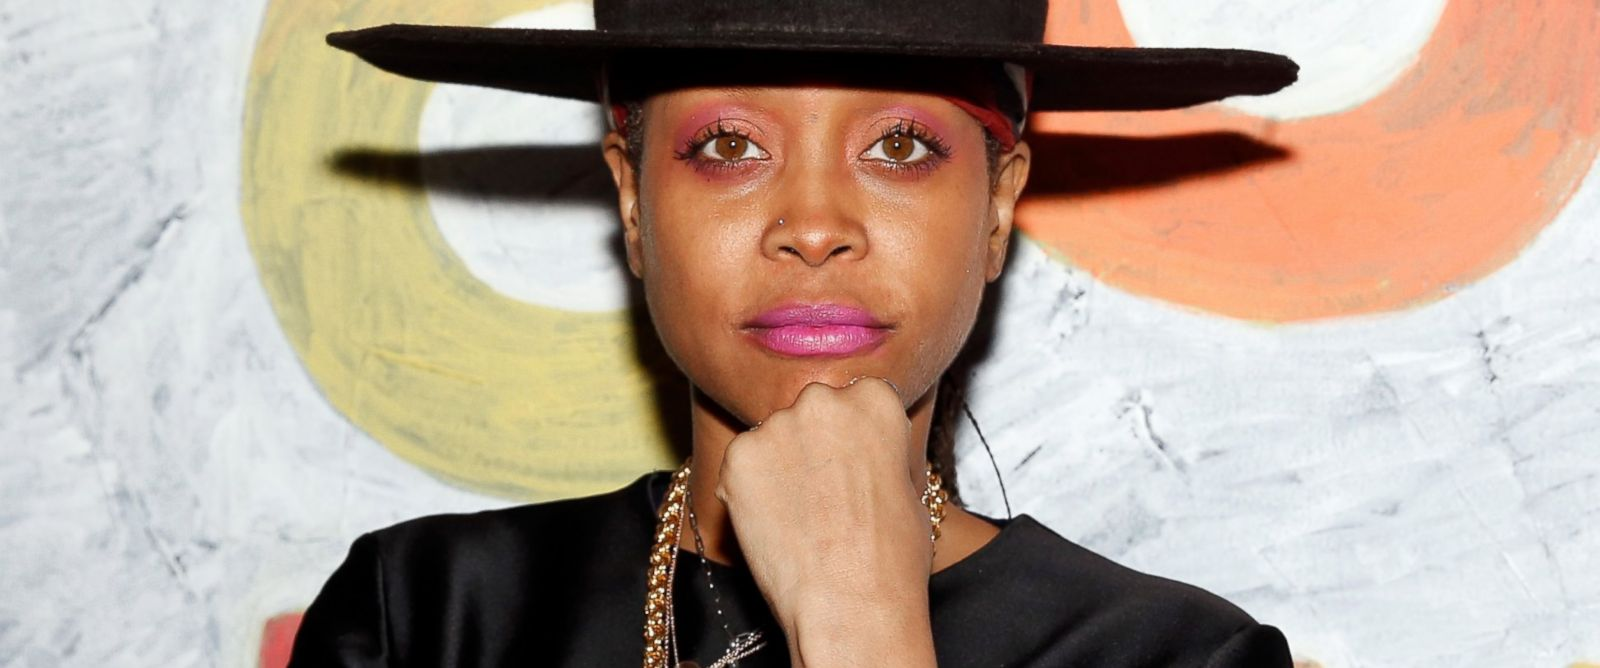 PHOTO: Motown toasts Erykah Badu atthe Samsung Galaxy Experience at SXSW on March 14, 2014 in Austin, Texas.